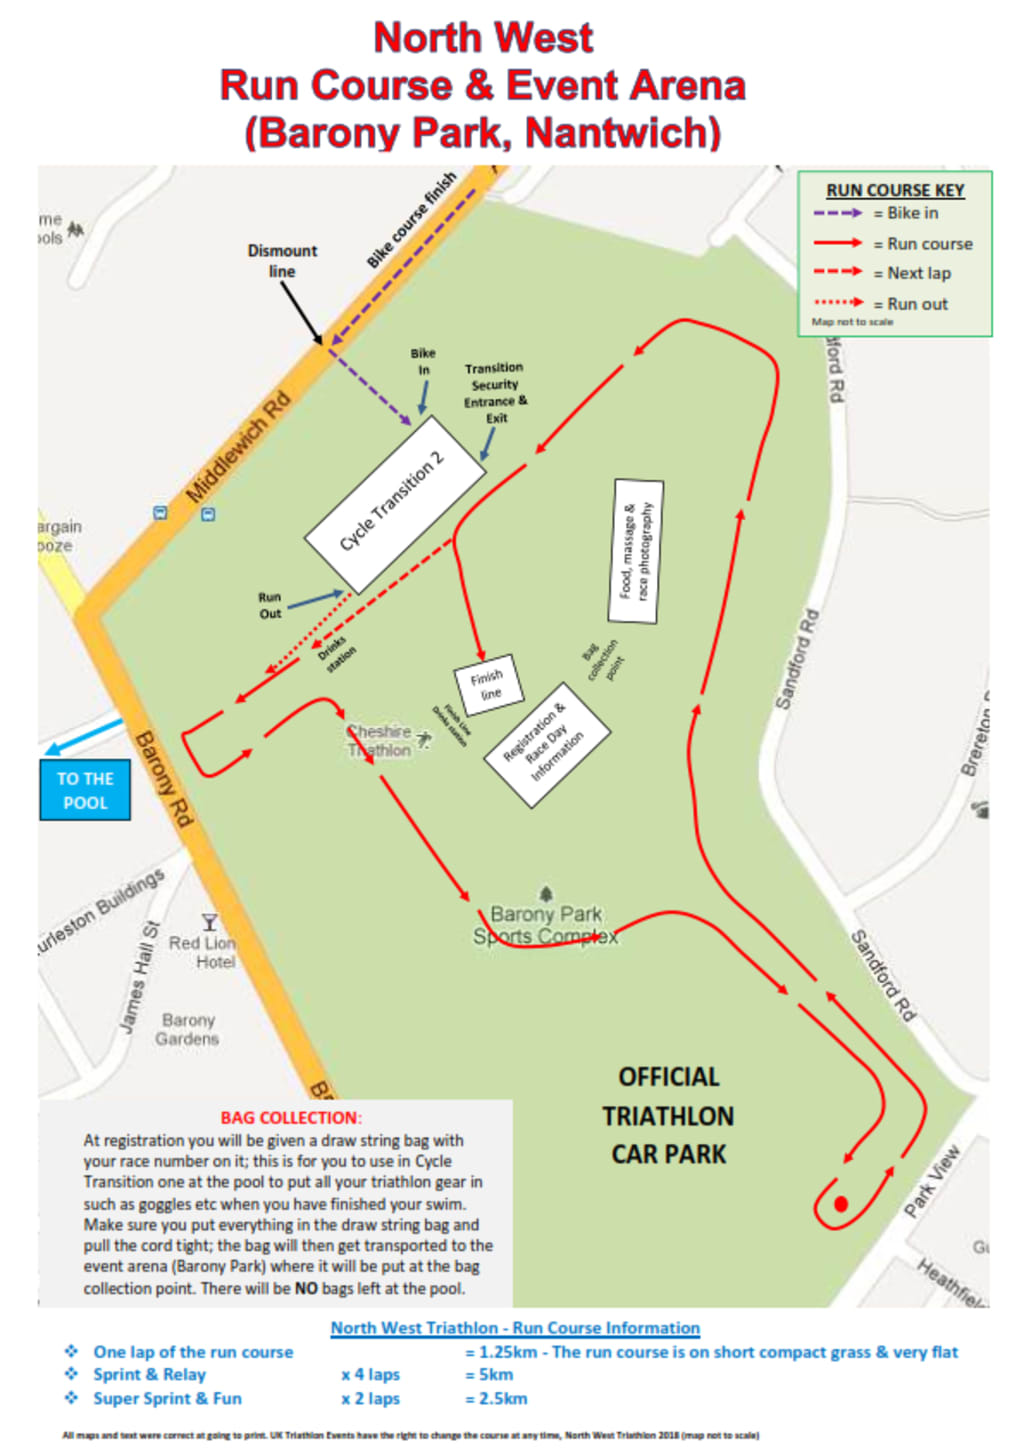 North_West_Run_course_and_Event_Arena_2018_001.png